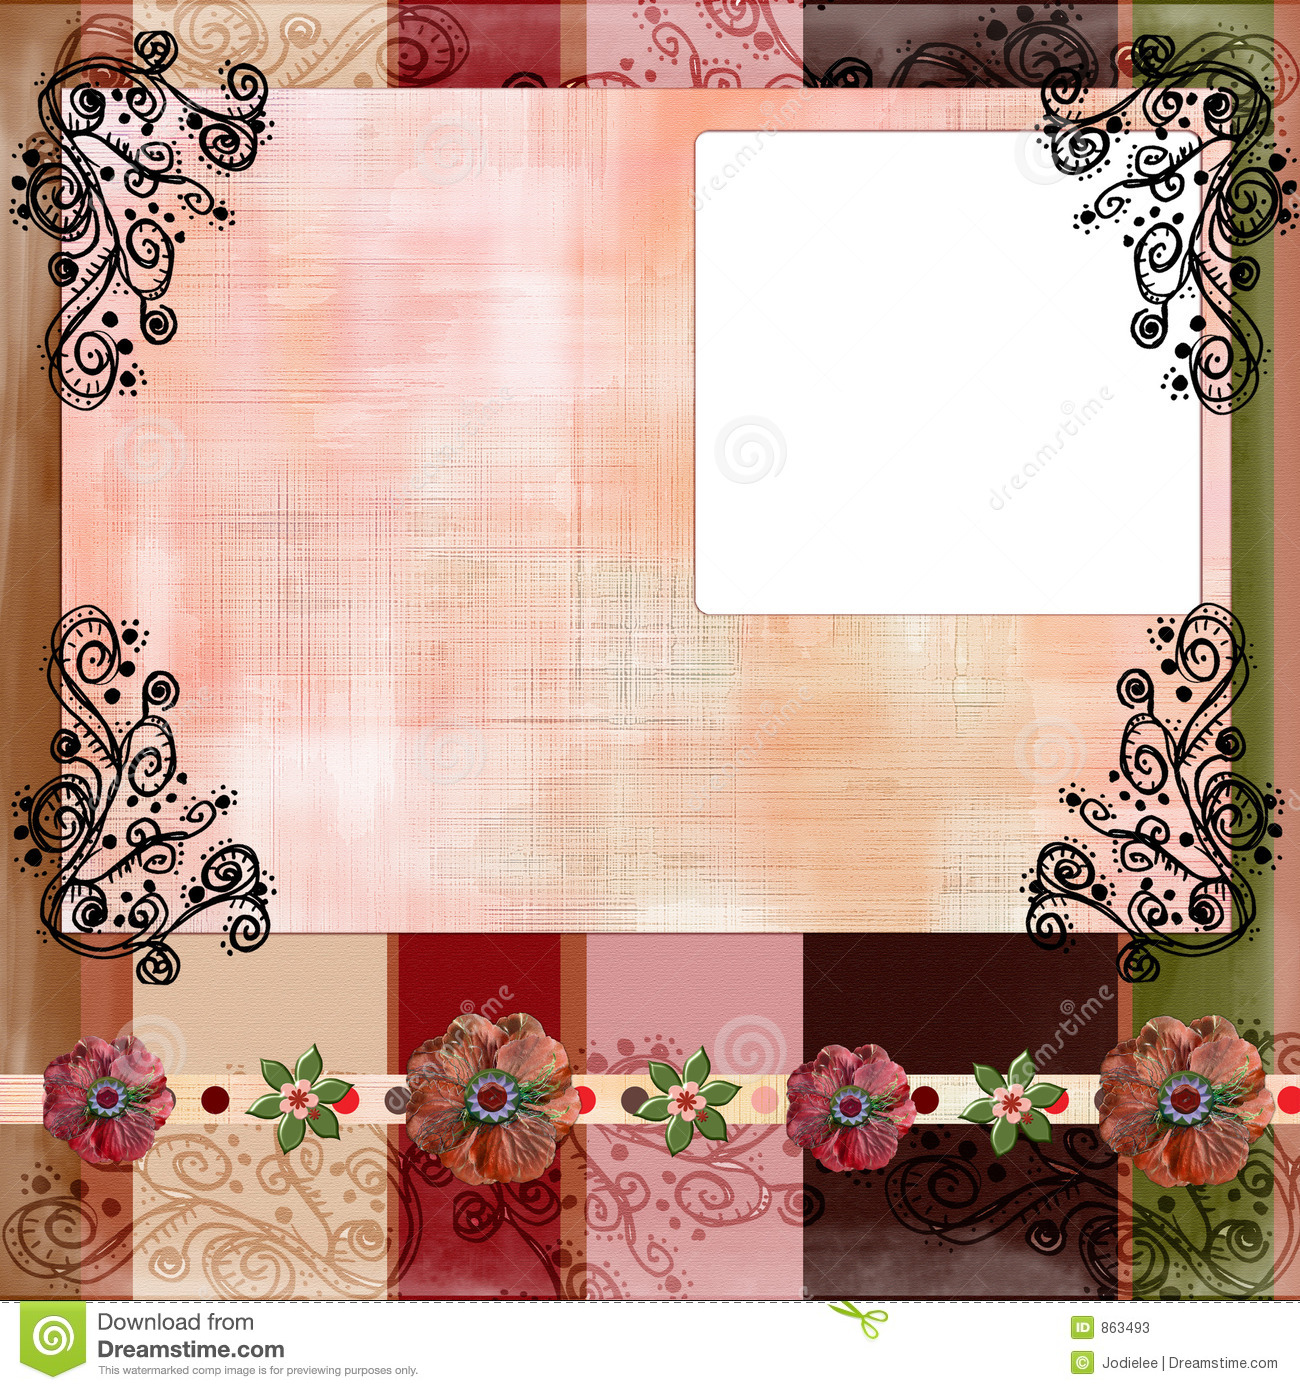 Bohemian Gypsy Style Scrapbook Album Page Layout 8X8 Inches Stock Photo 863493